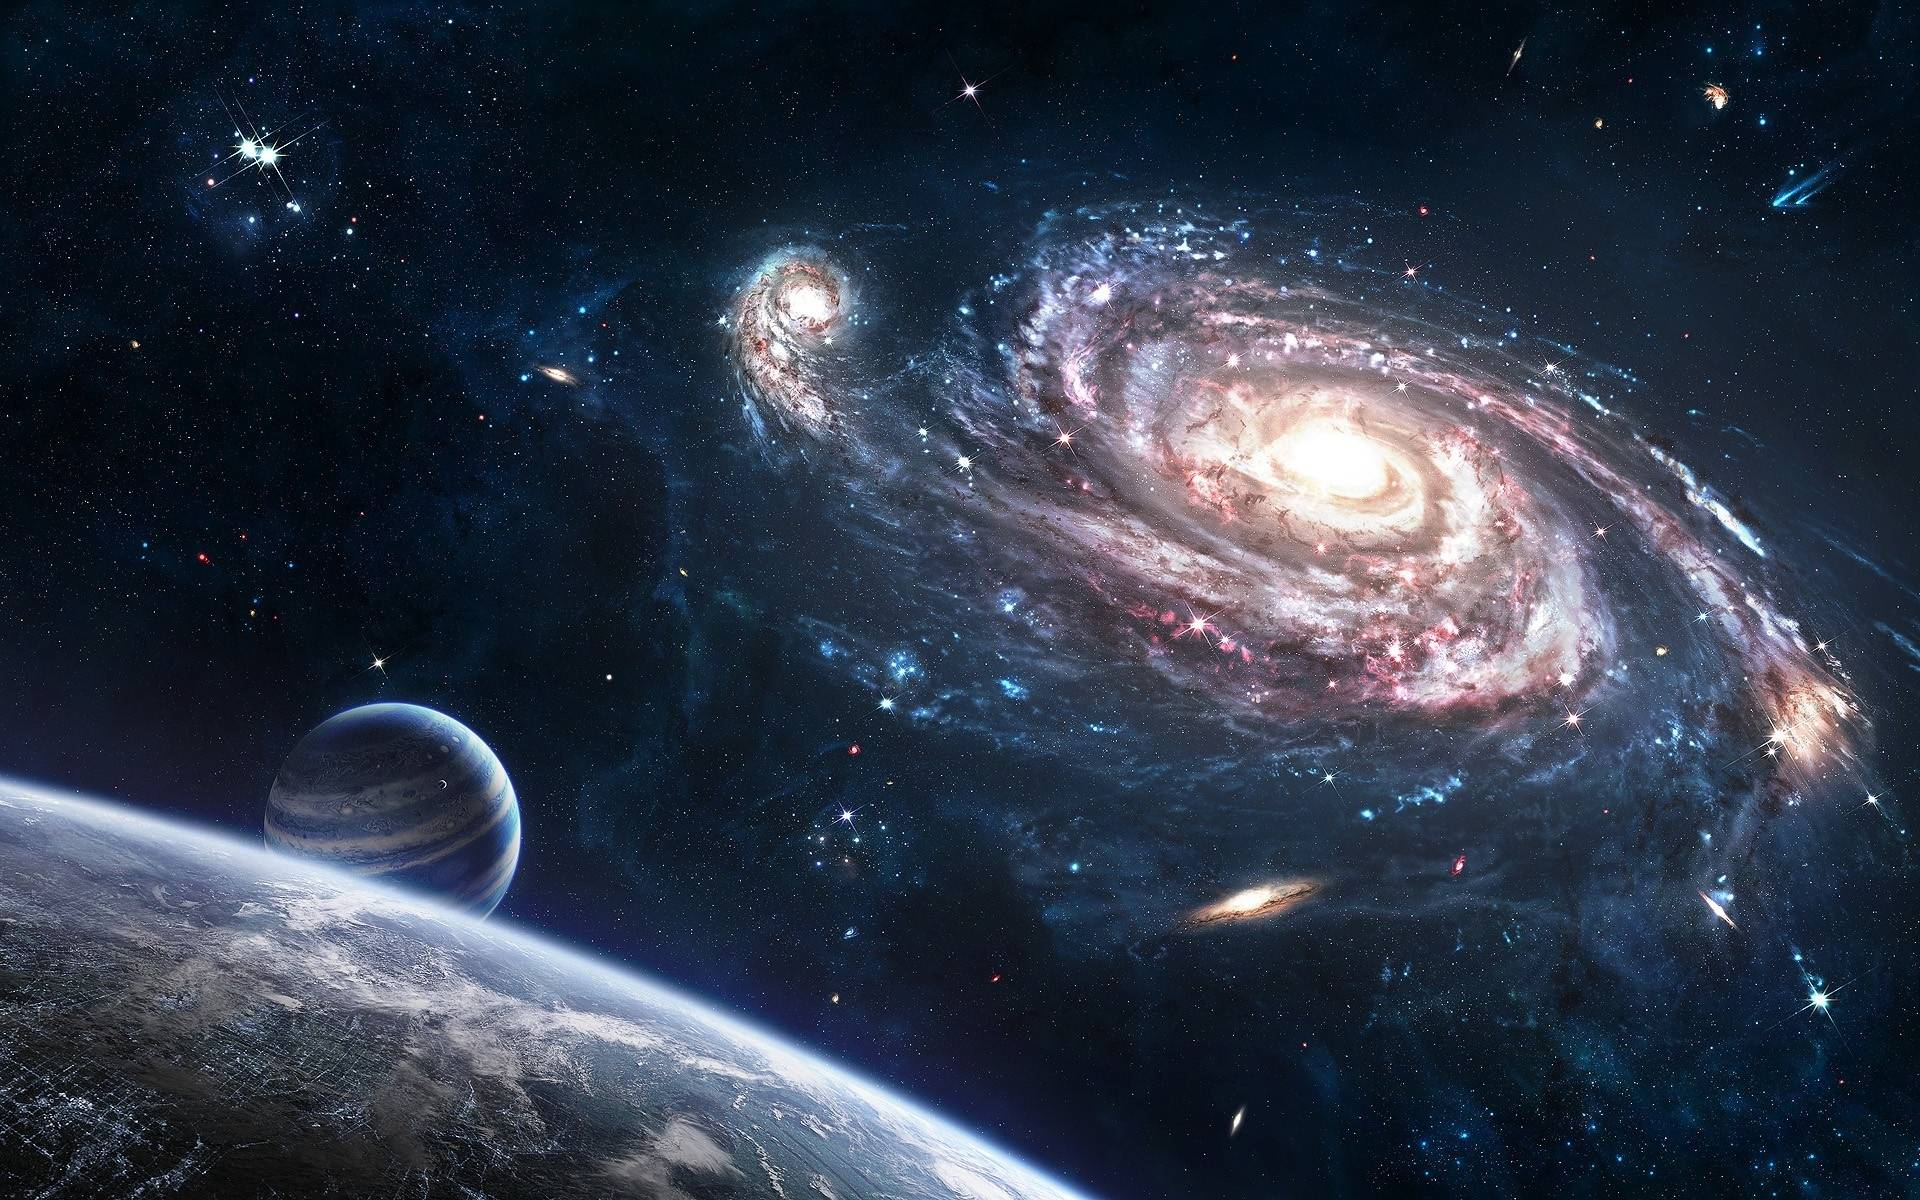 Outer Space Desktop Wallpapers 1920x1200